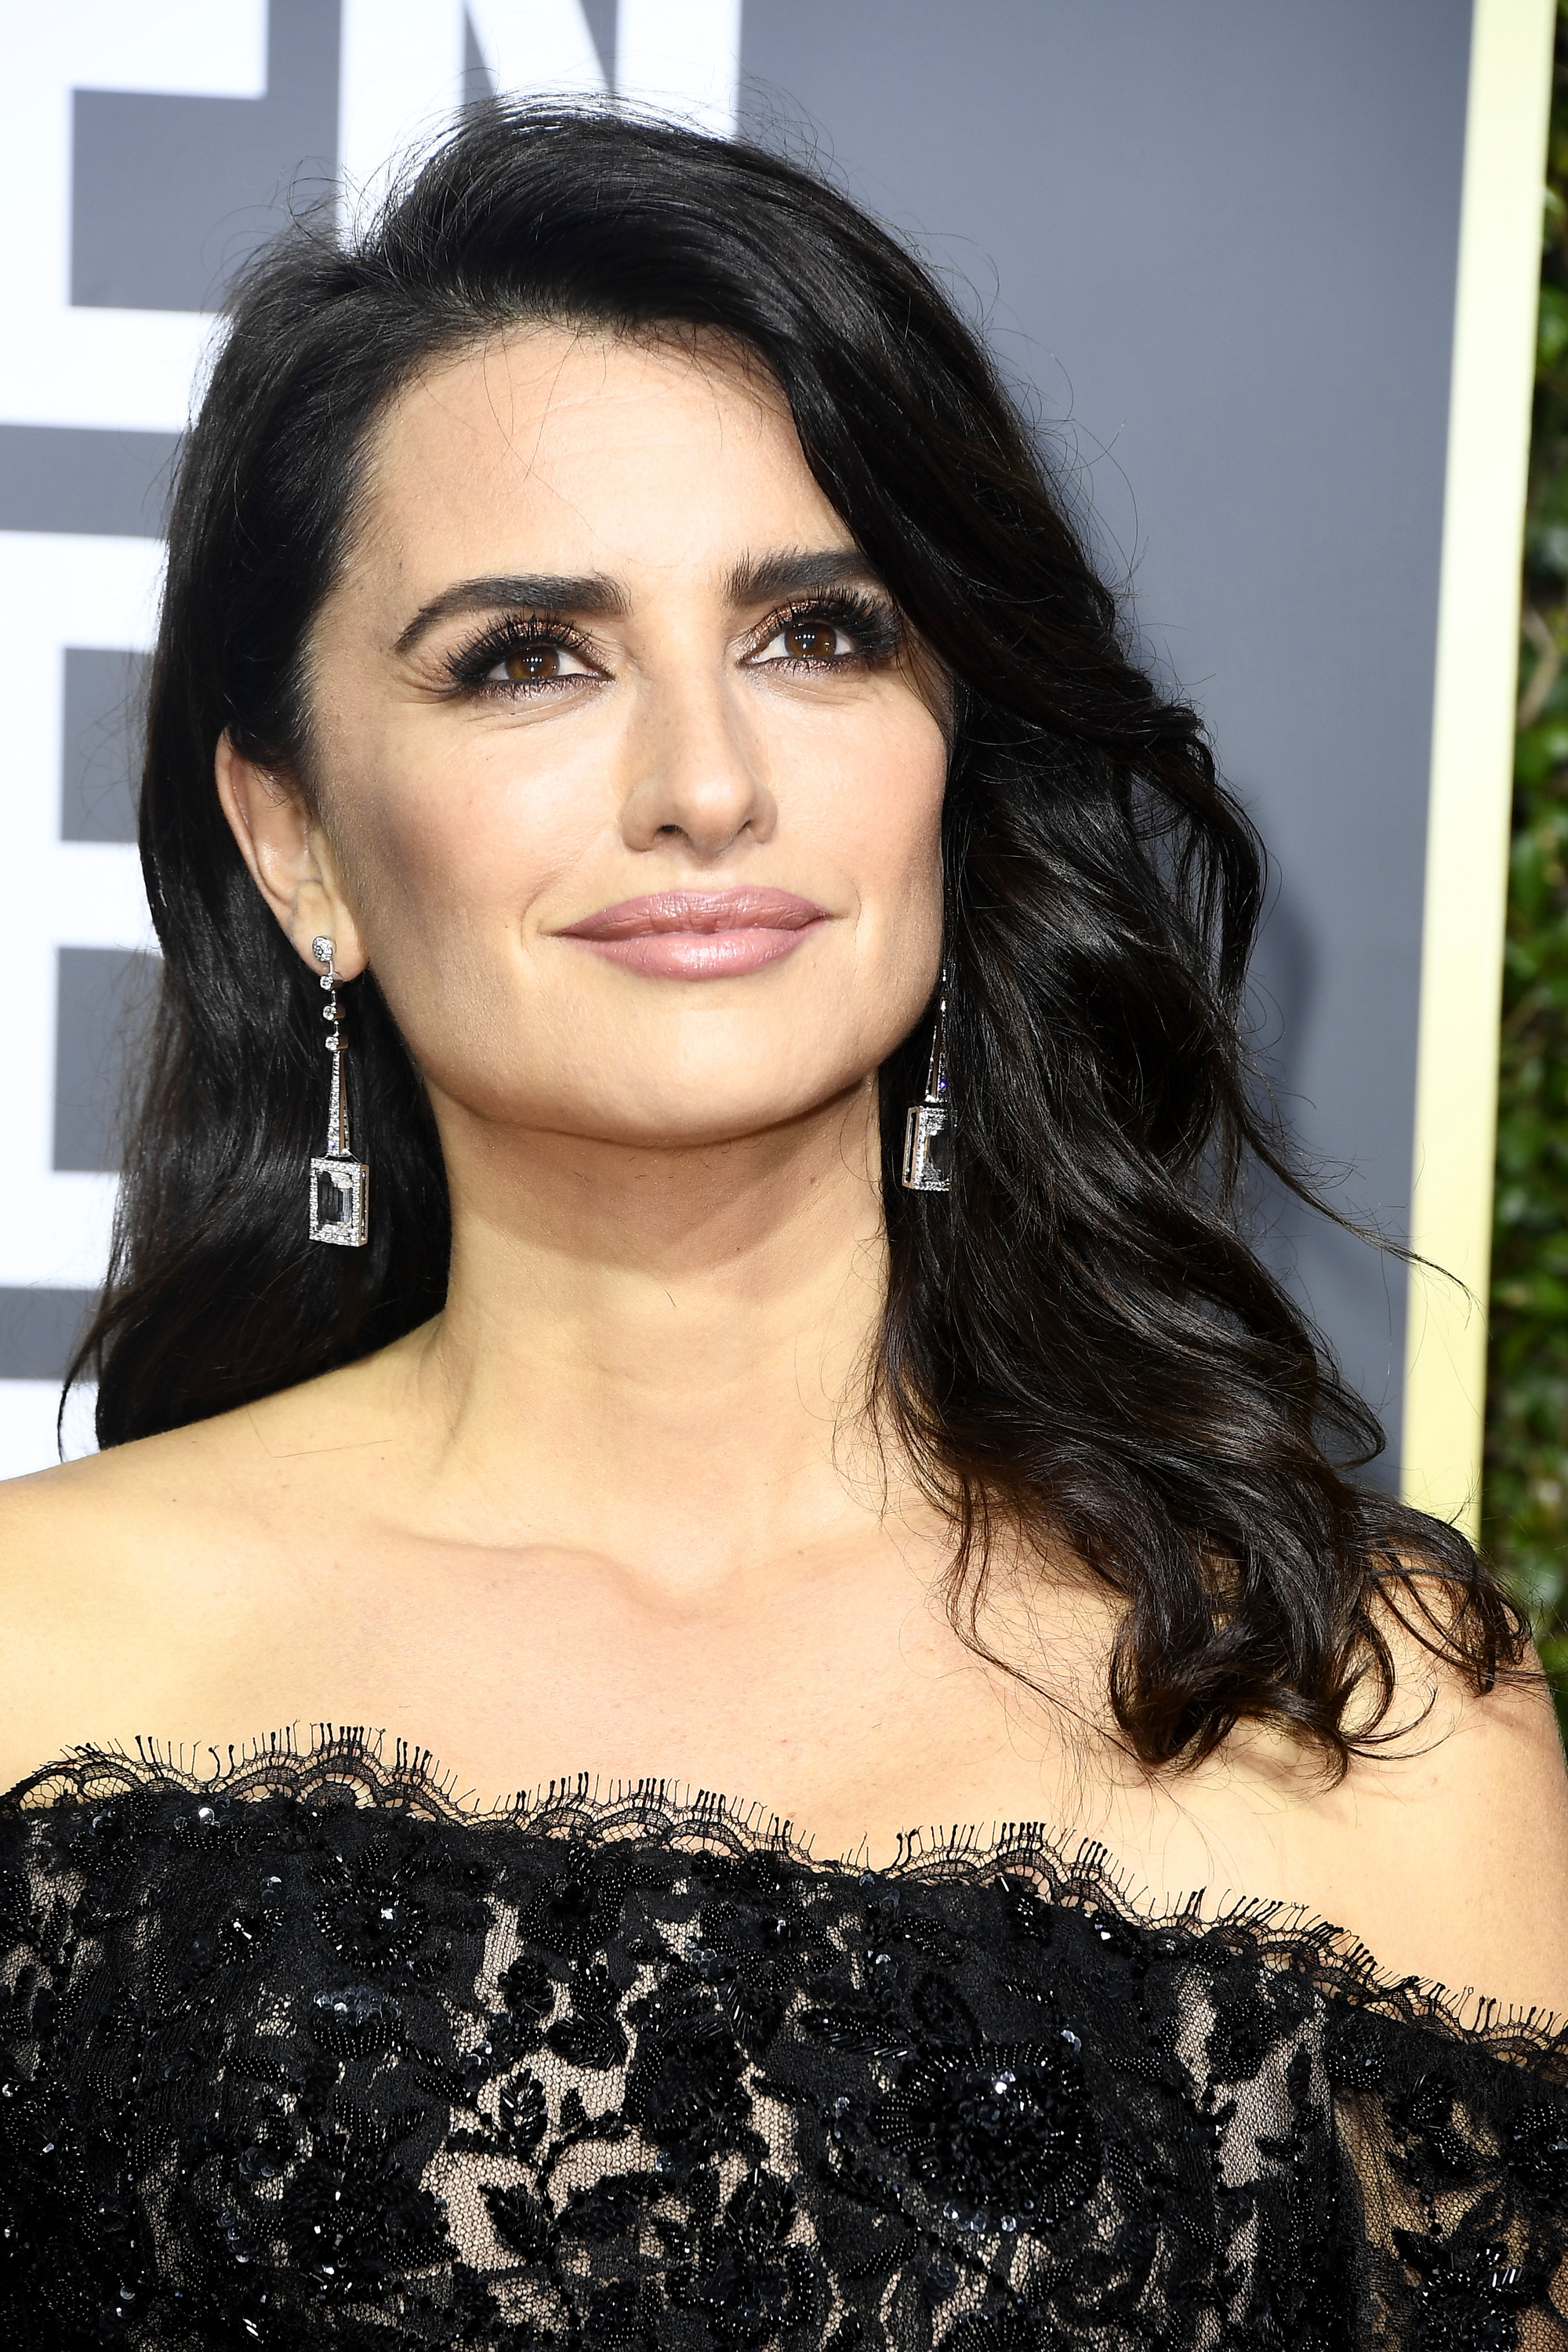 Penelope Cruz Shines bright at the 75th Golden Globe Awards  What We Adore